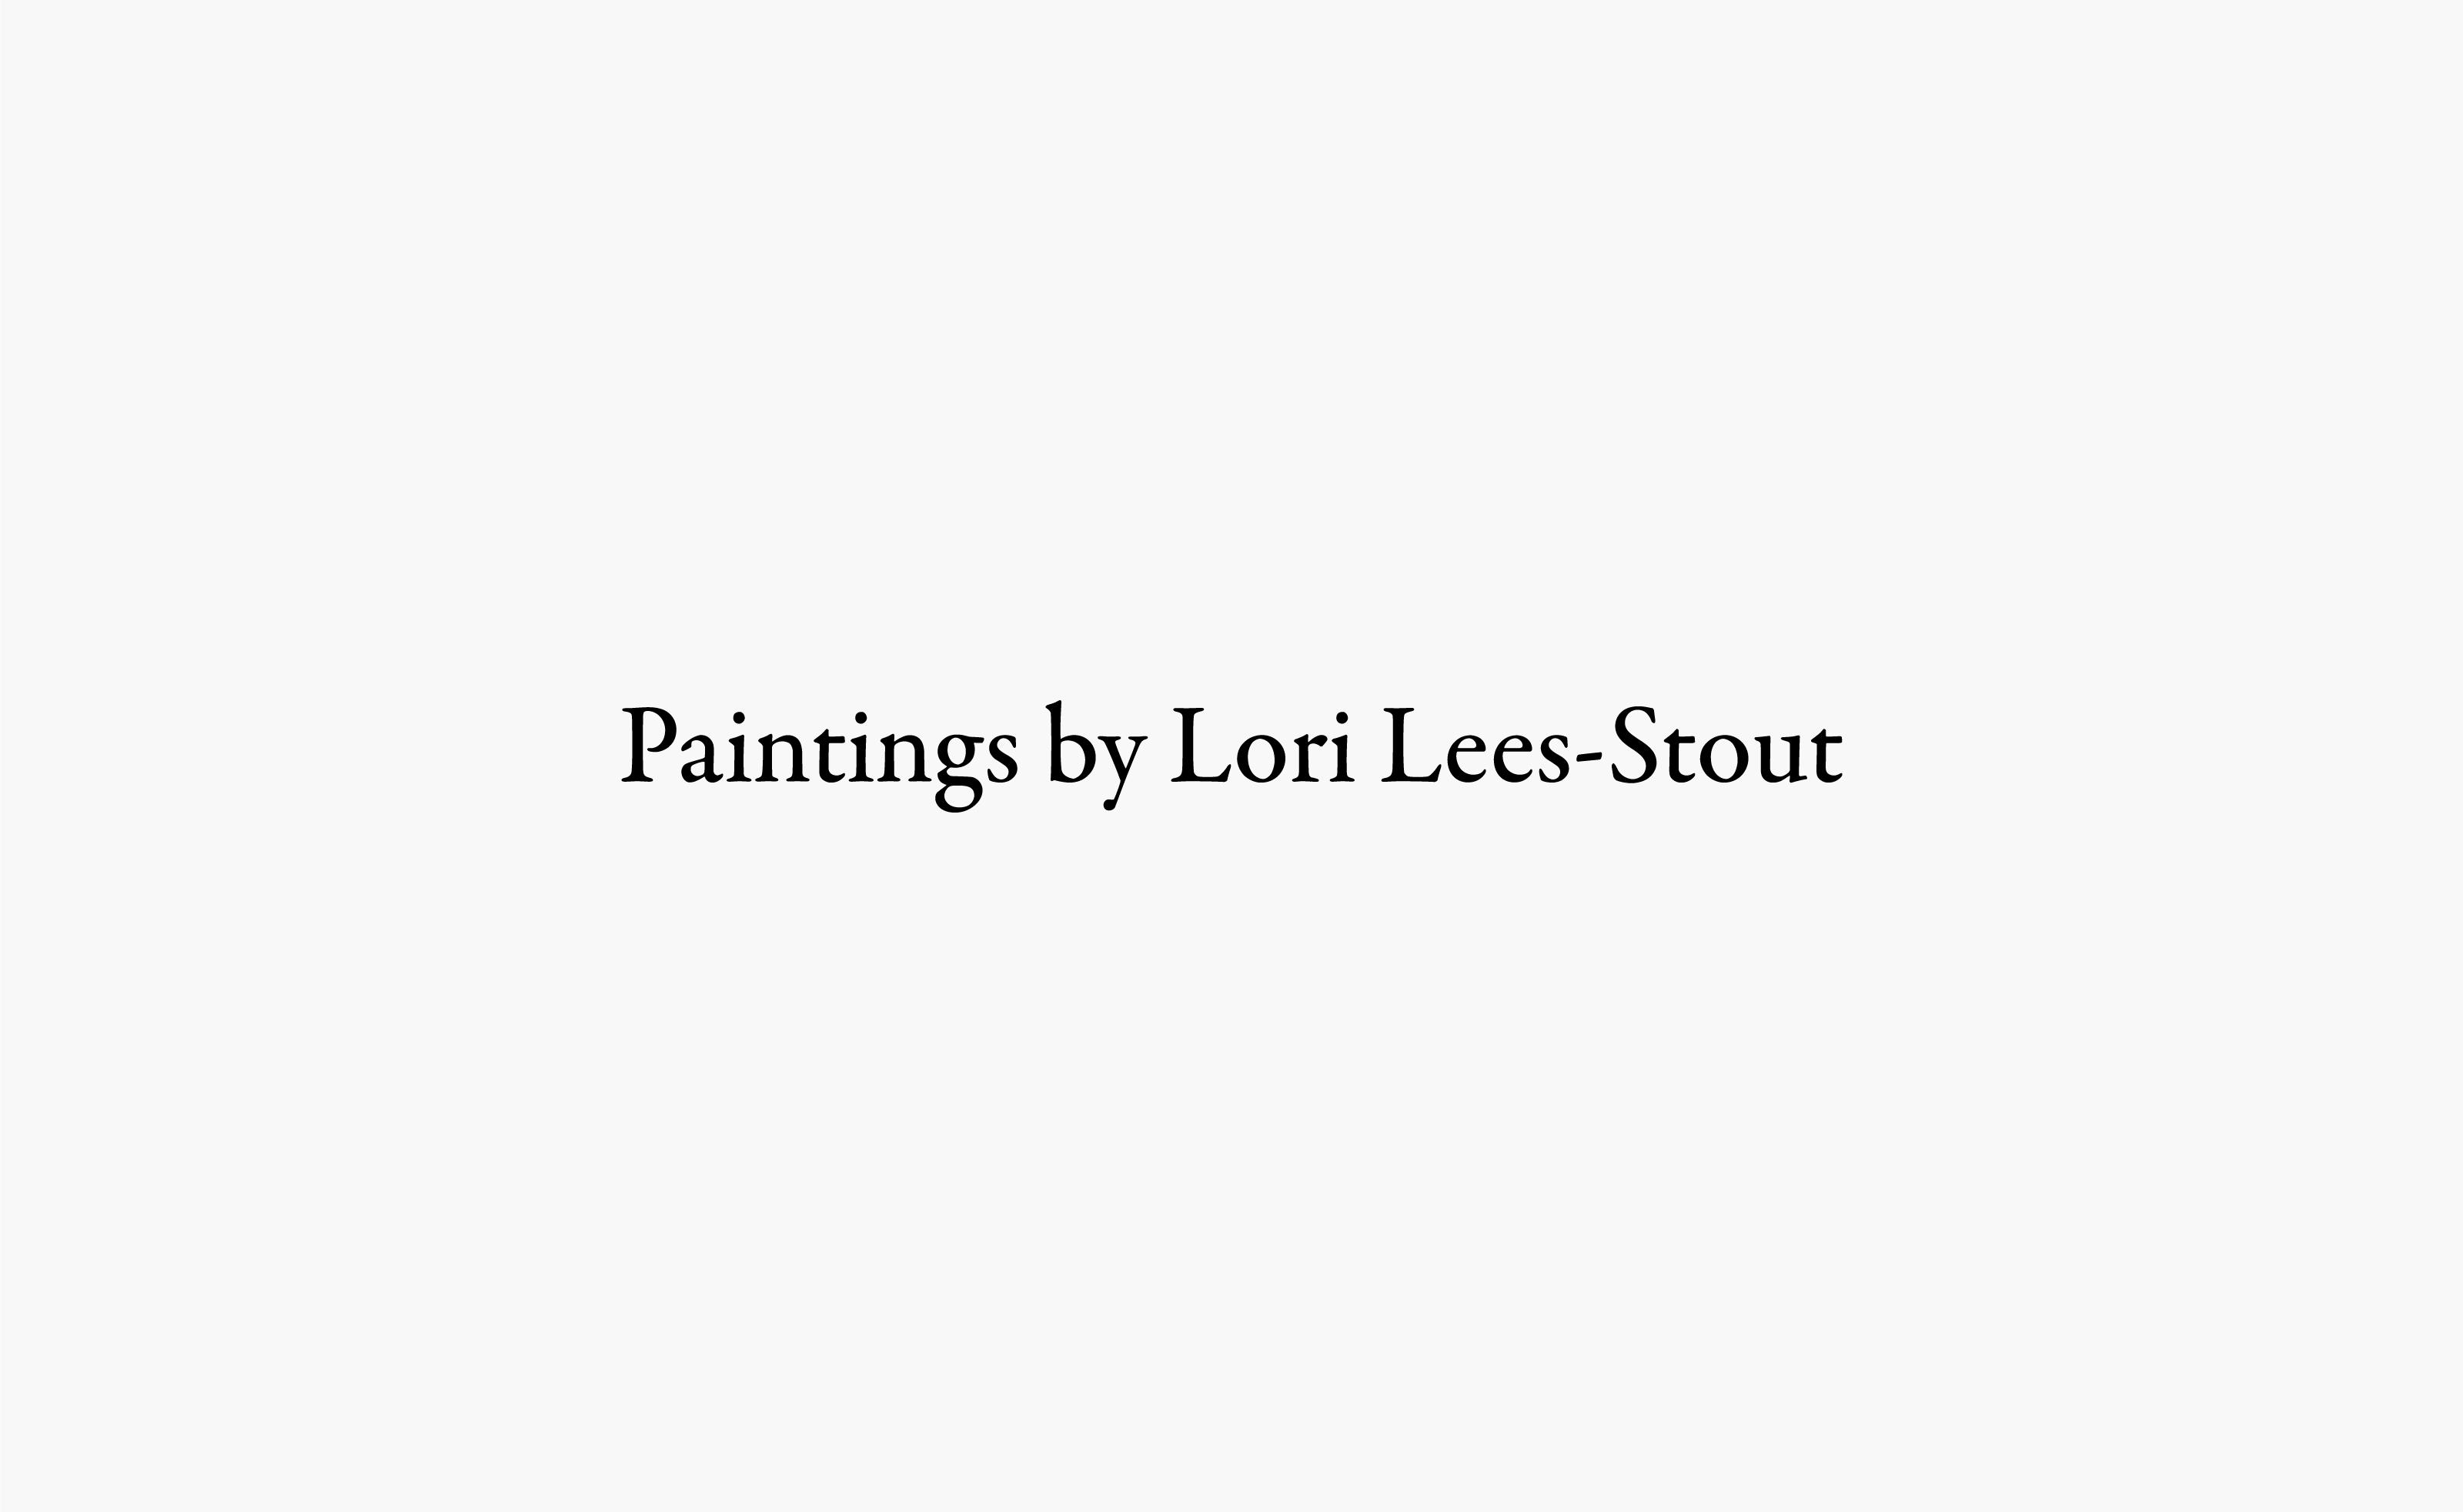 Paintings by Lori Lees-Stout logo centered on a light grey background — by Yagnyuk.